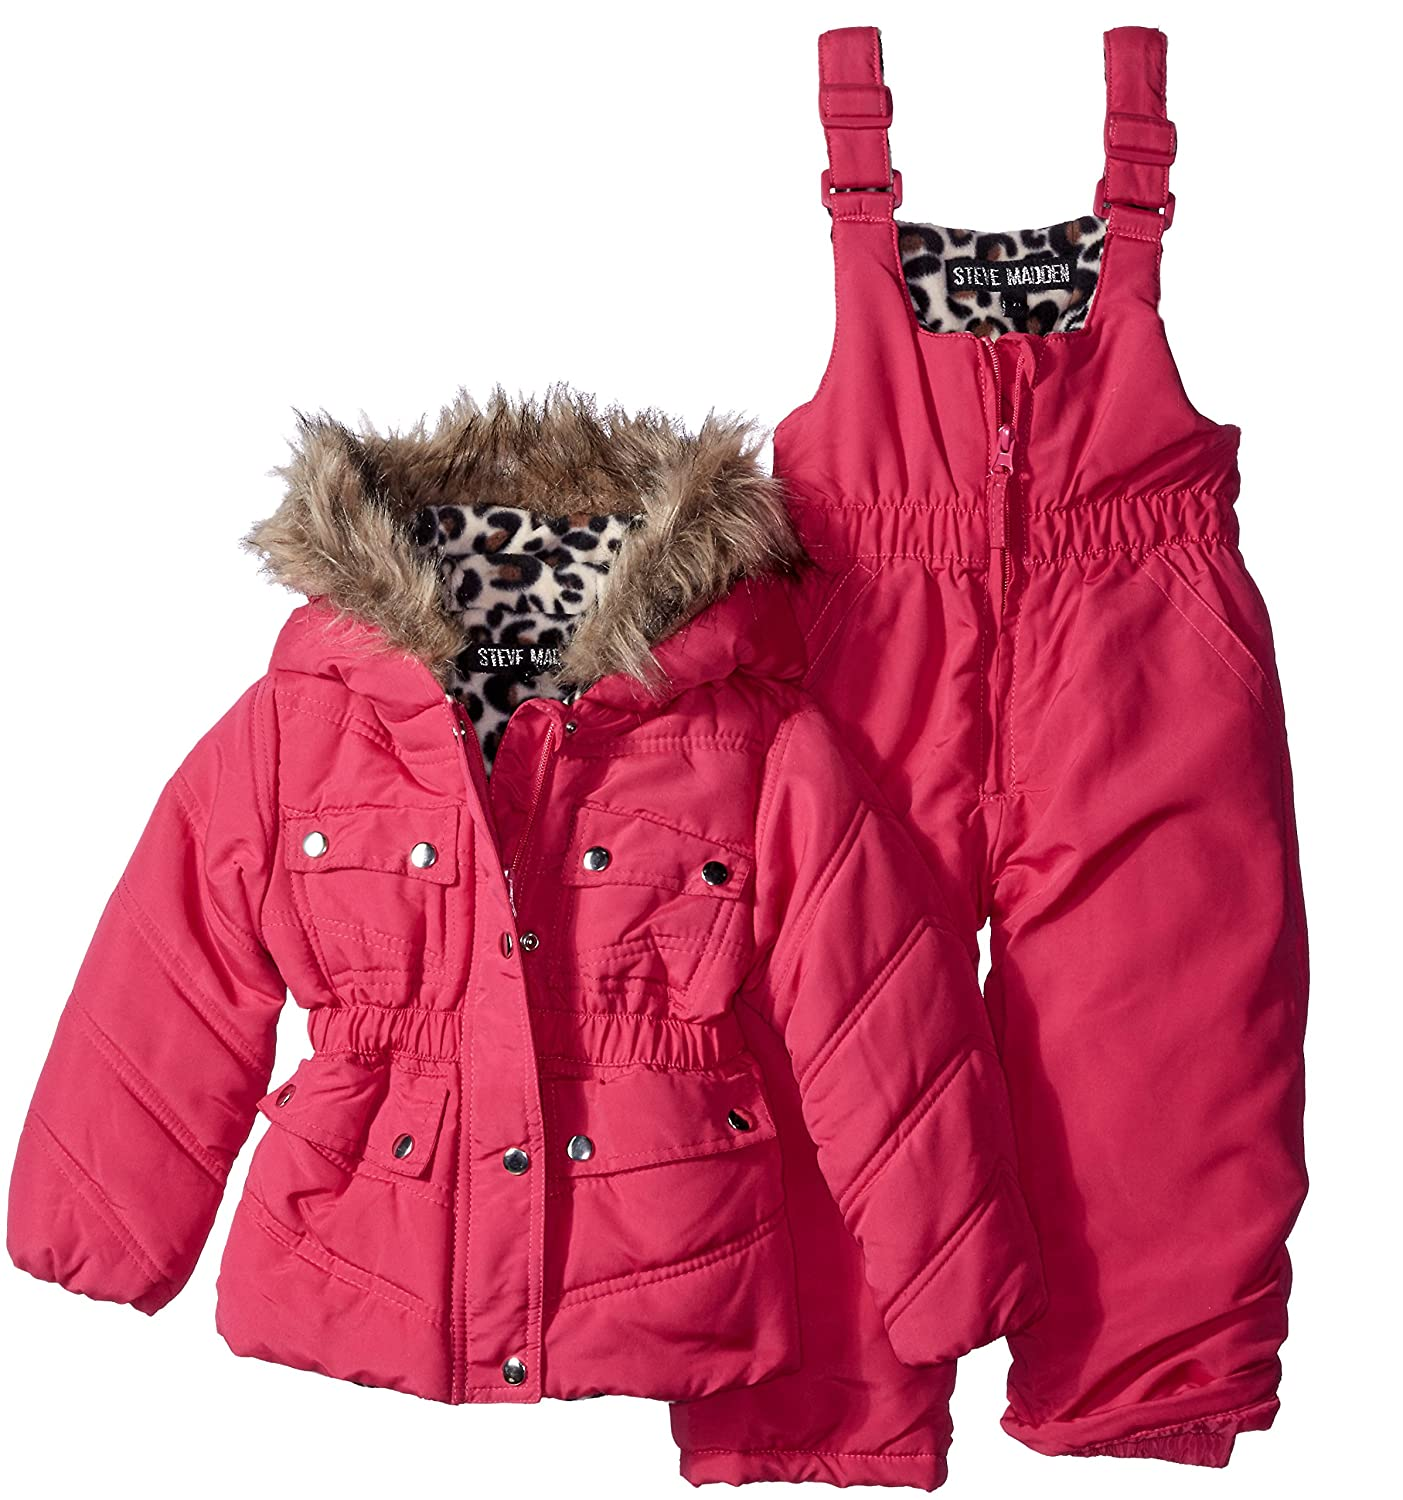 3fc2d1f83 Amazon.com  Steve Madden Baby Girls  Snow Suit (More Styles ...